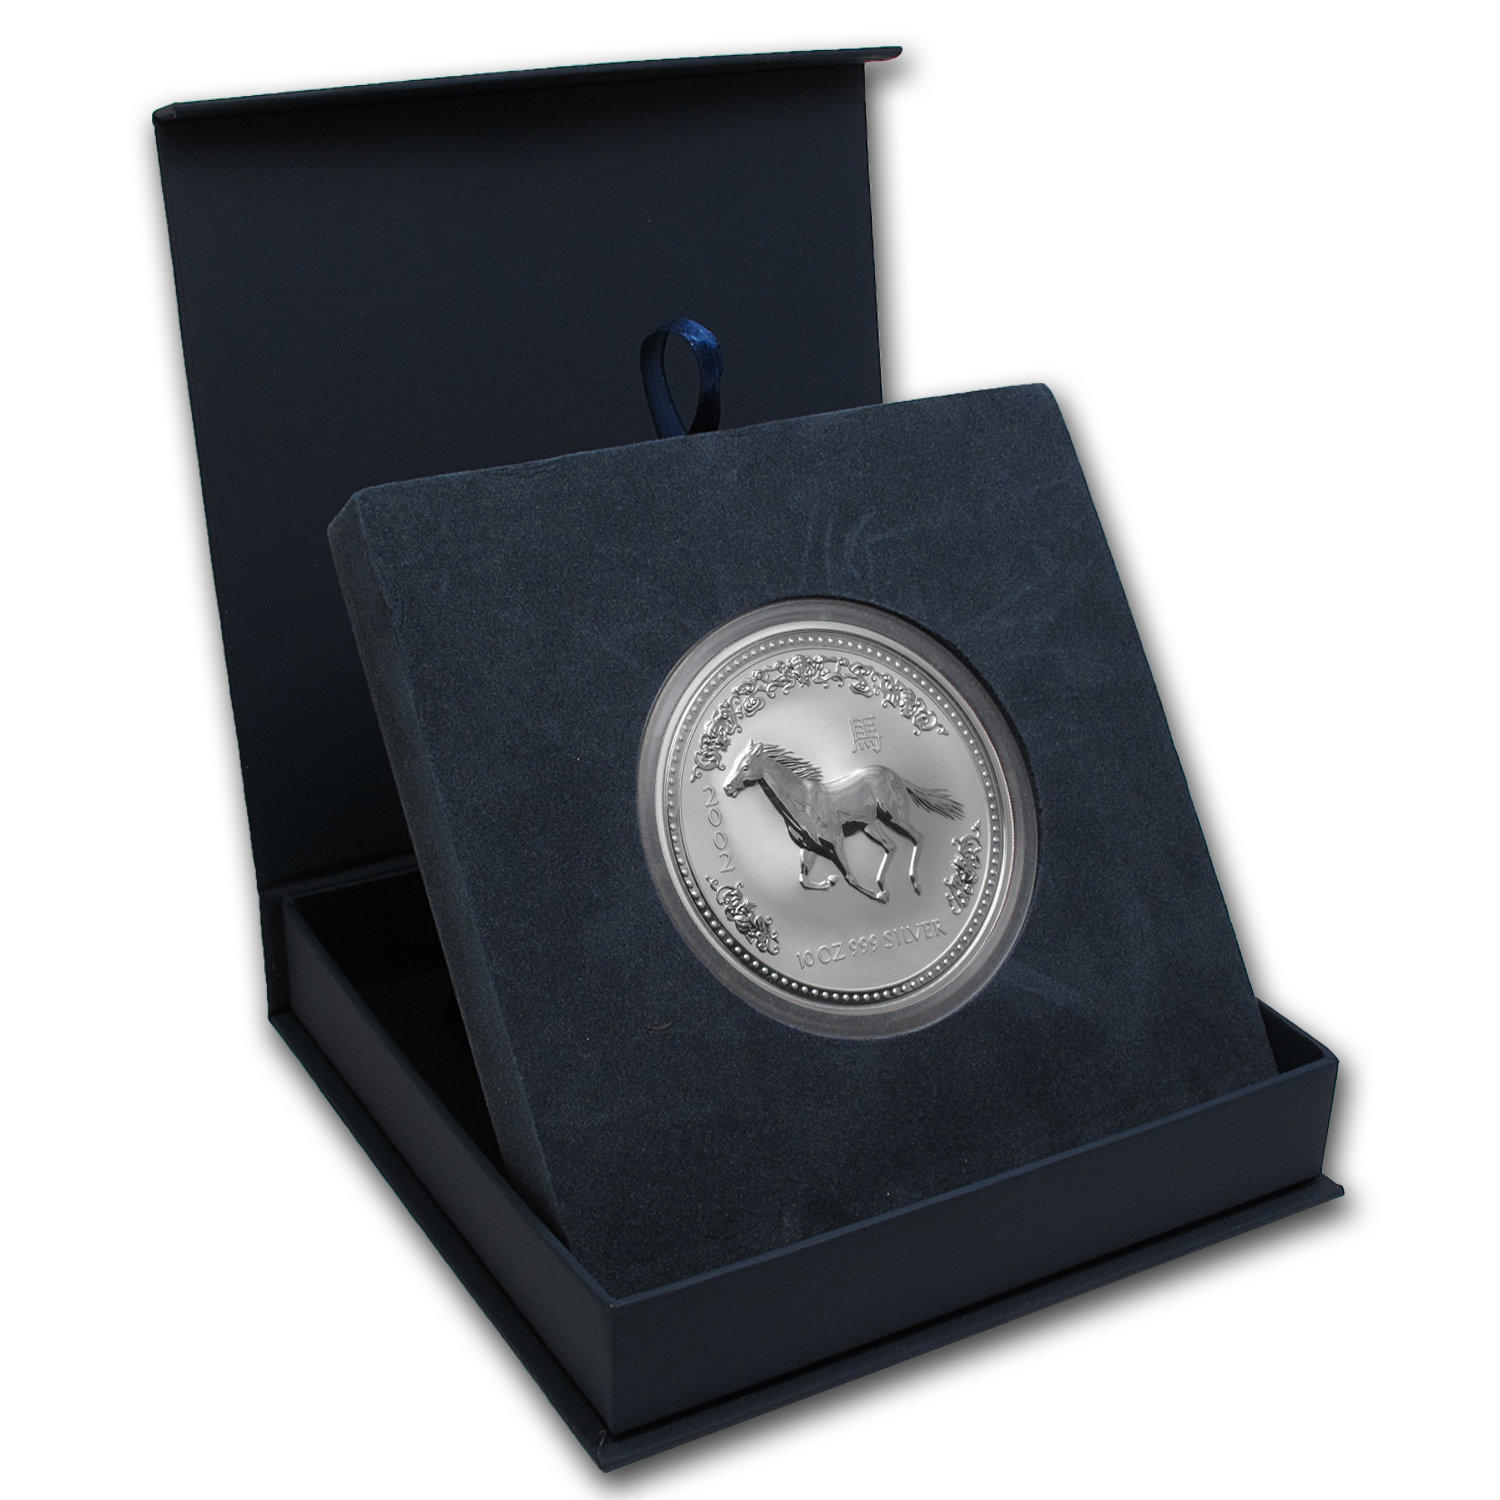 APMEX Gift Box - 10 oz Perth Mint Silver Coin Series 1